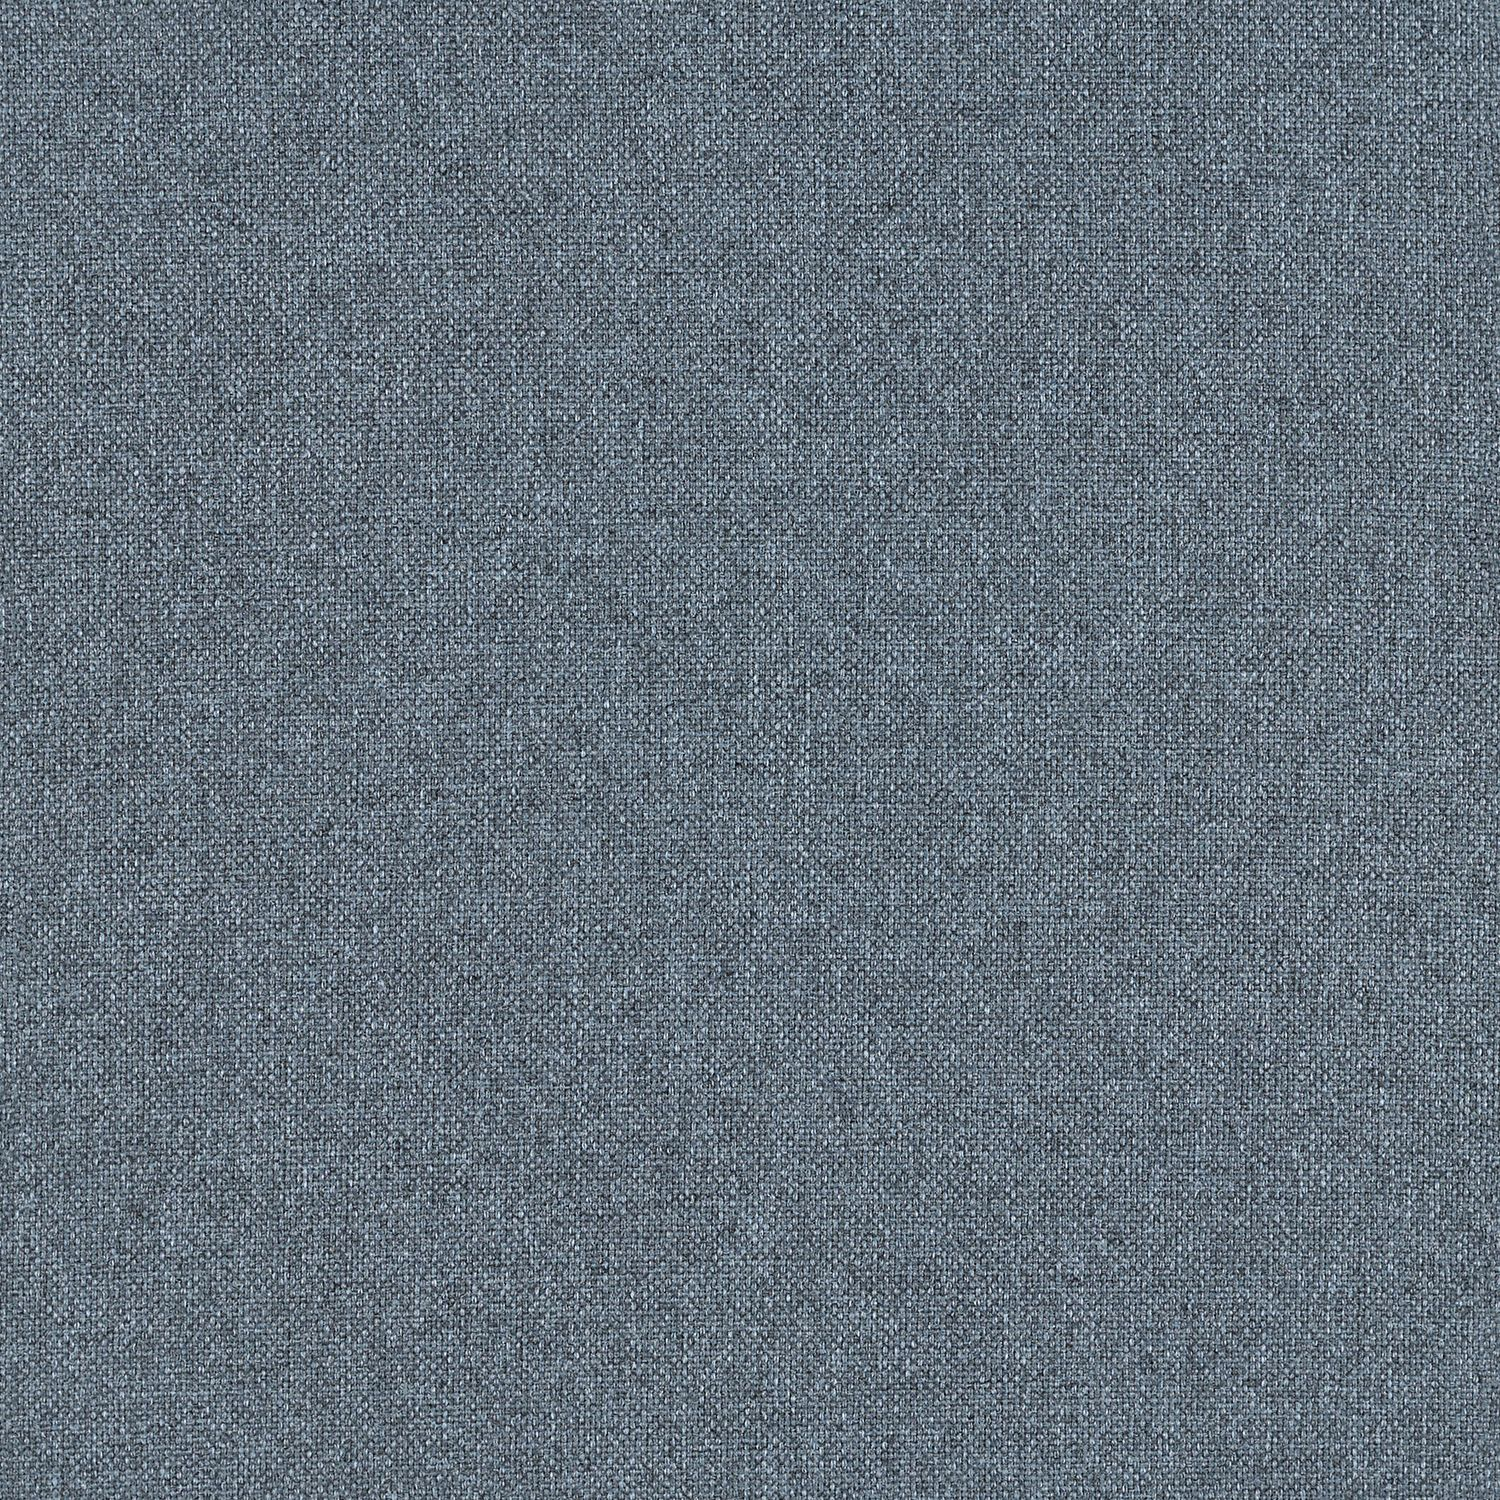 Backdrop - Blue Filter - 1027 - 08 Tileable Swatches